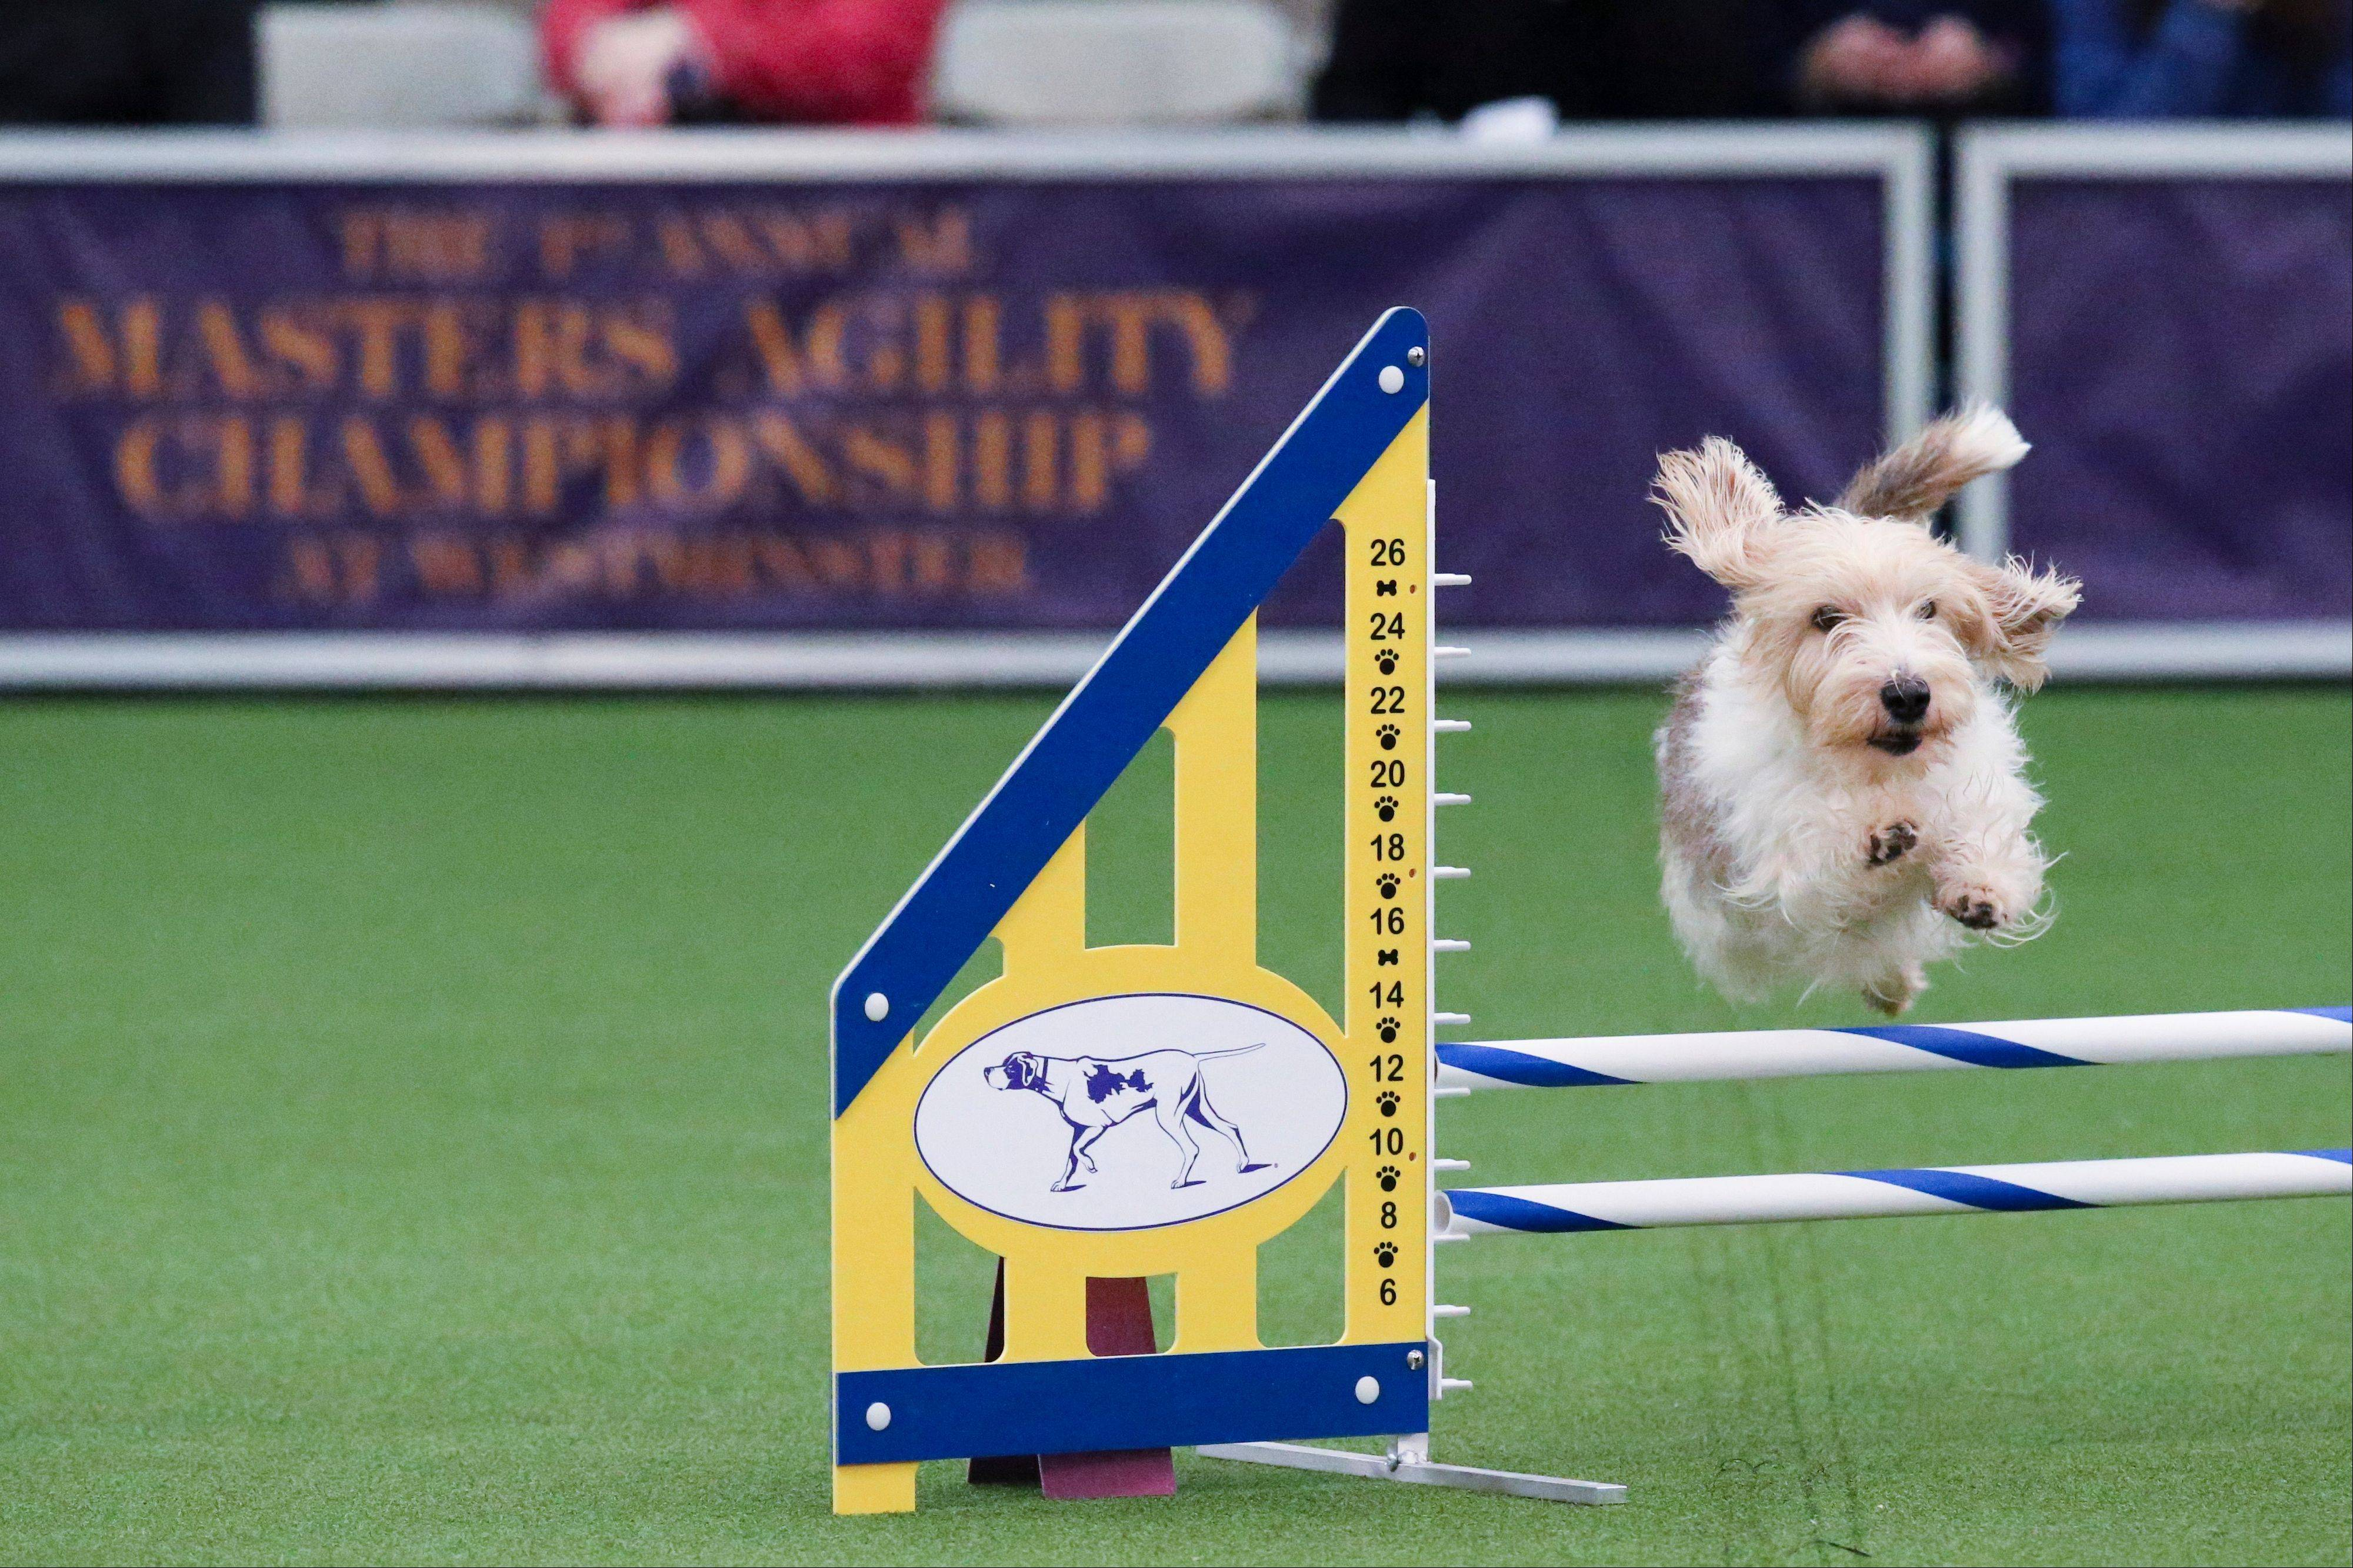 Salsa the petit basset griffon vendeen takes a jump during the Masters Agility Championship at Westminster.